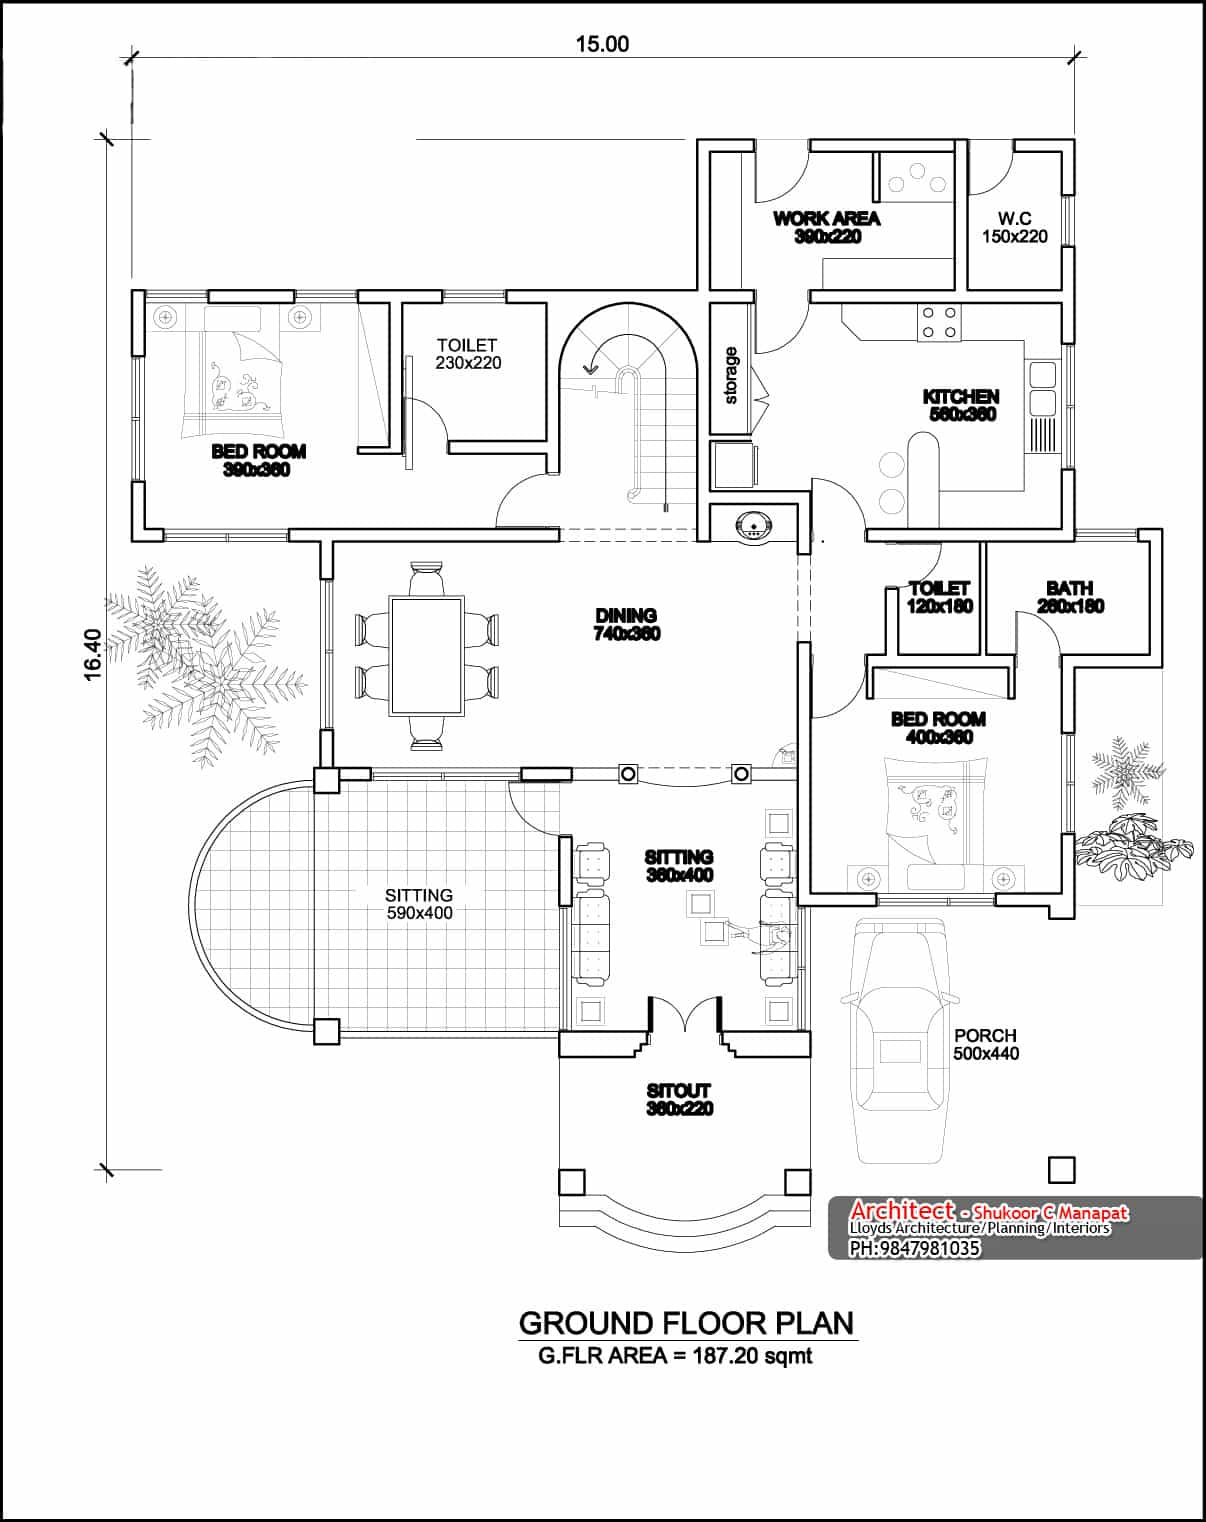 Two storey four bedroom house design at 3236 sq ft with plan for 2 bedroom ground floor plan